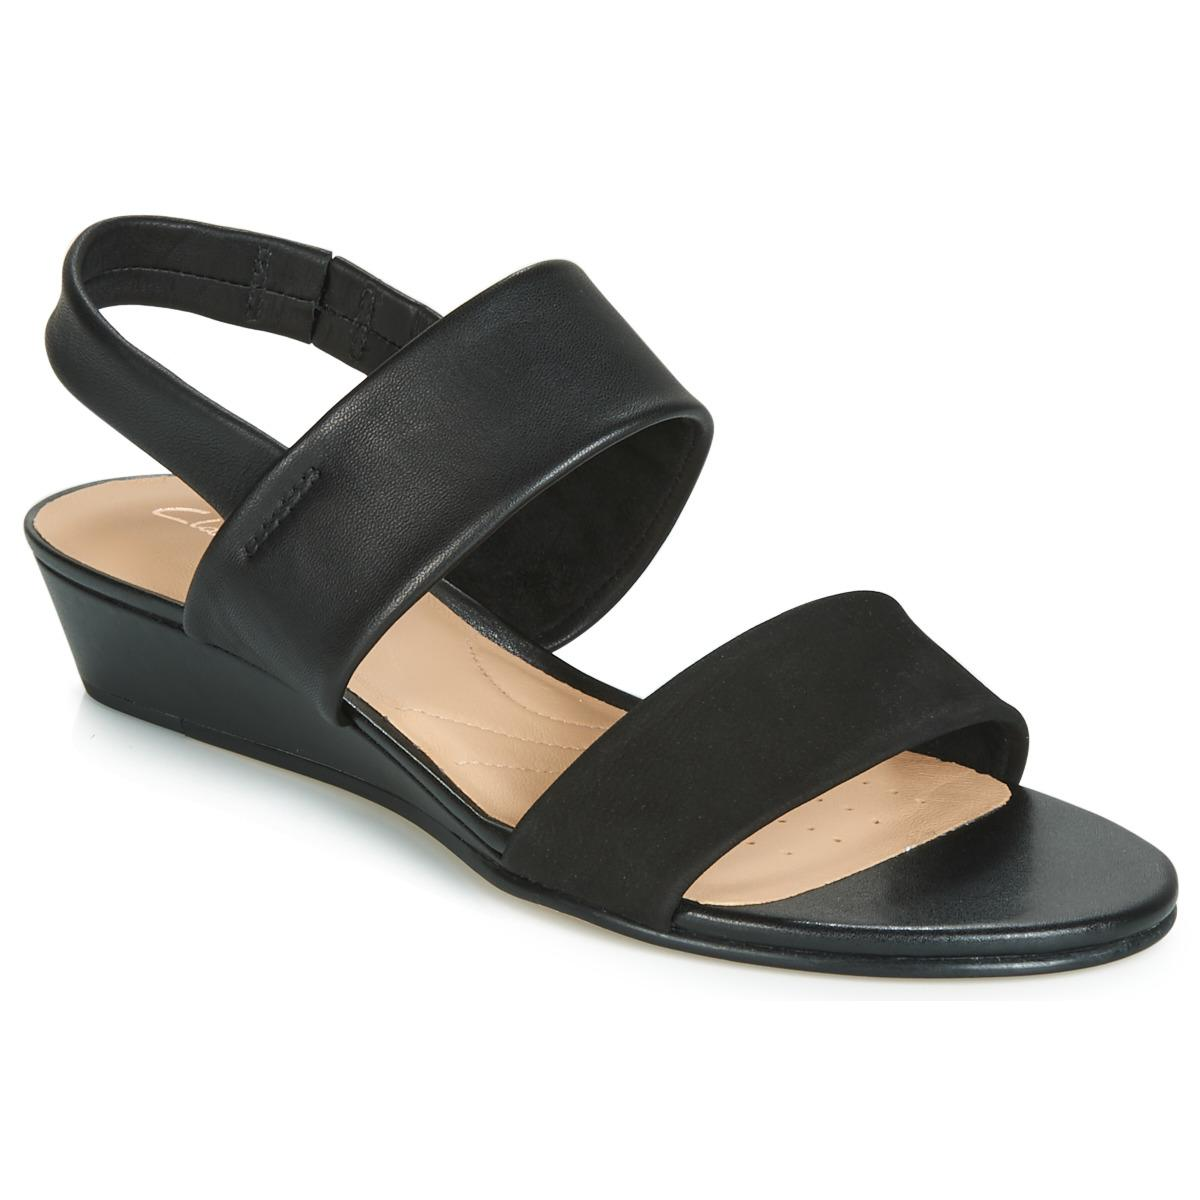 10dc02e6a78e Clarks Sense Lily Sandals in Black - Lyst